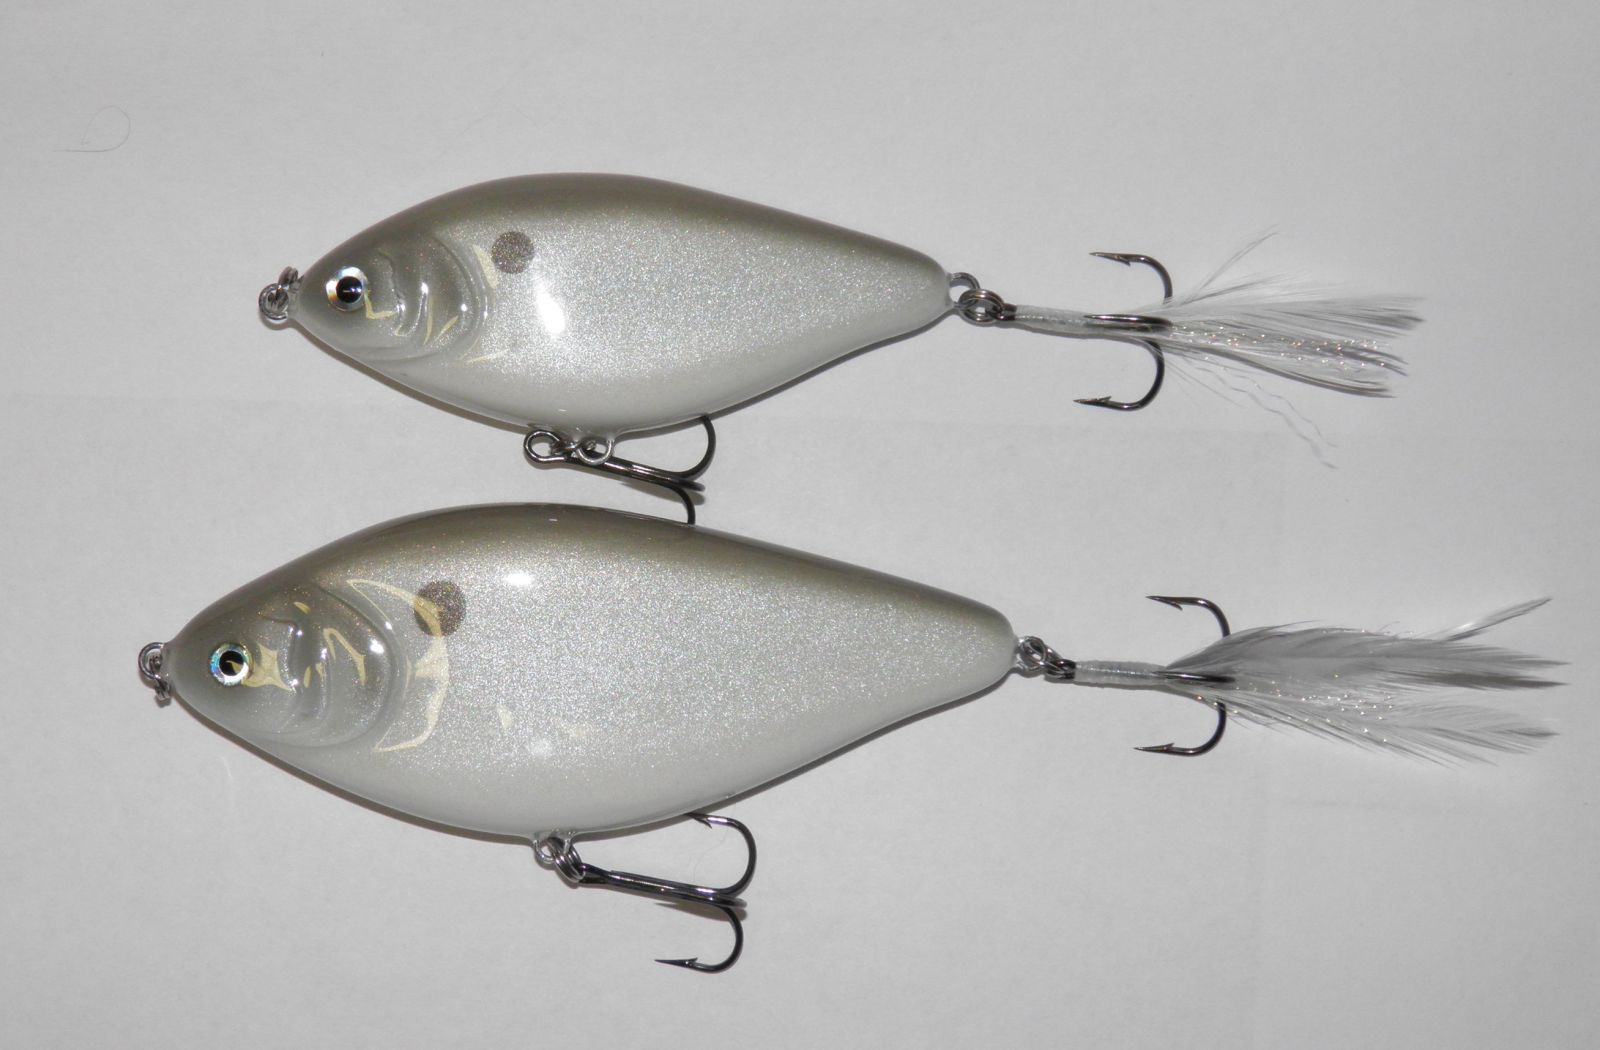 Gizzard Shad one piece glides